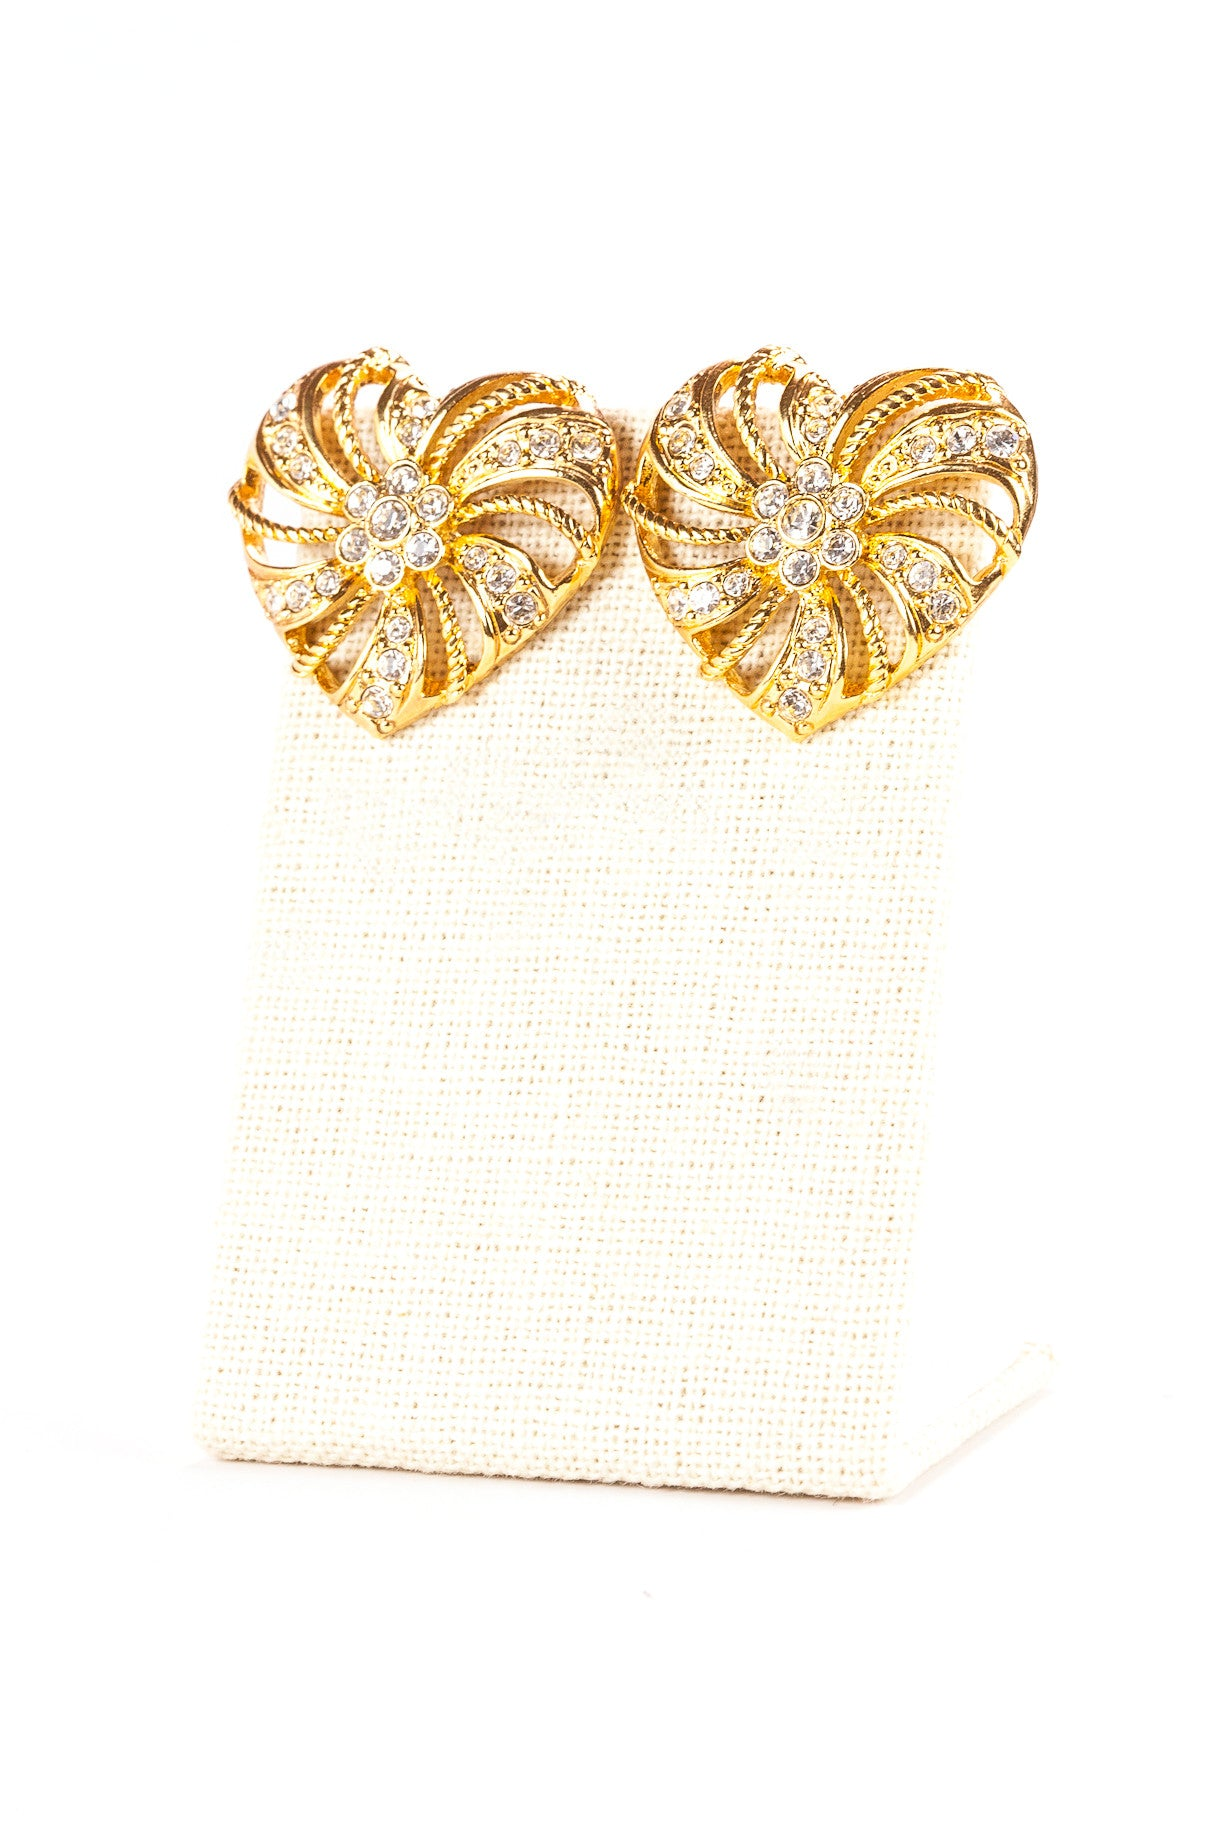 80's__Avon__Gold Heart & Rhinestone Earrings